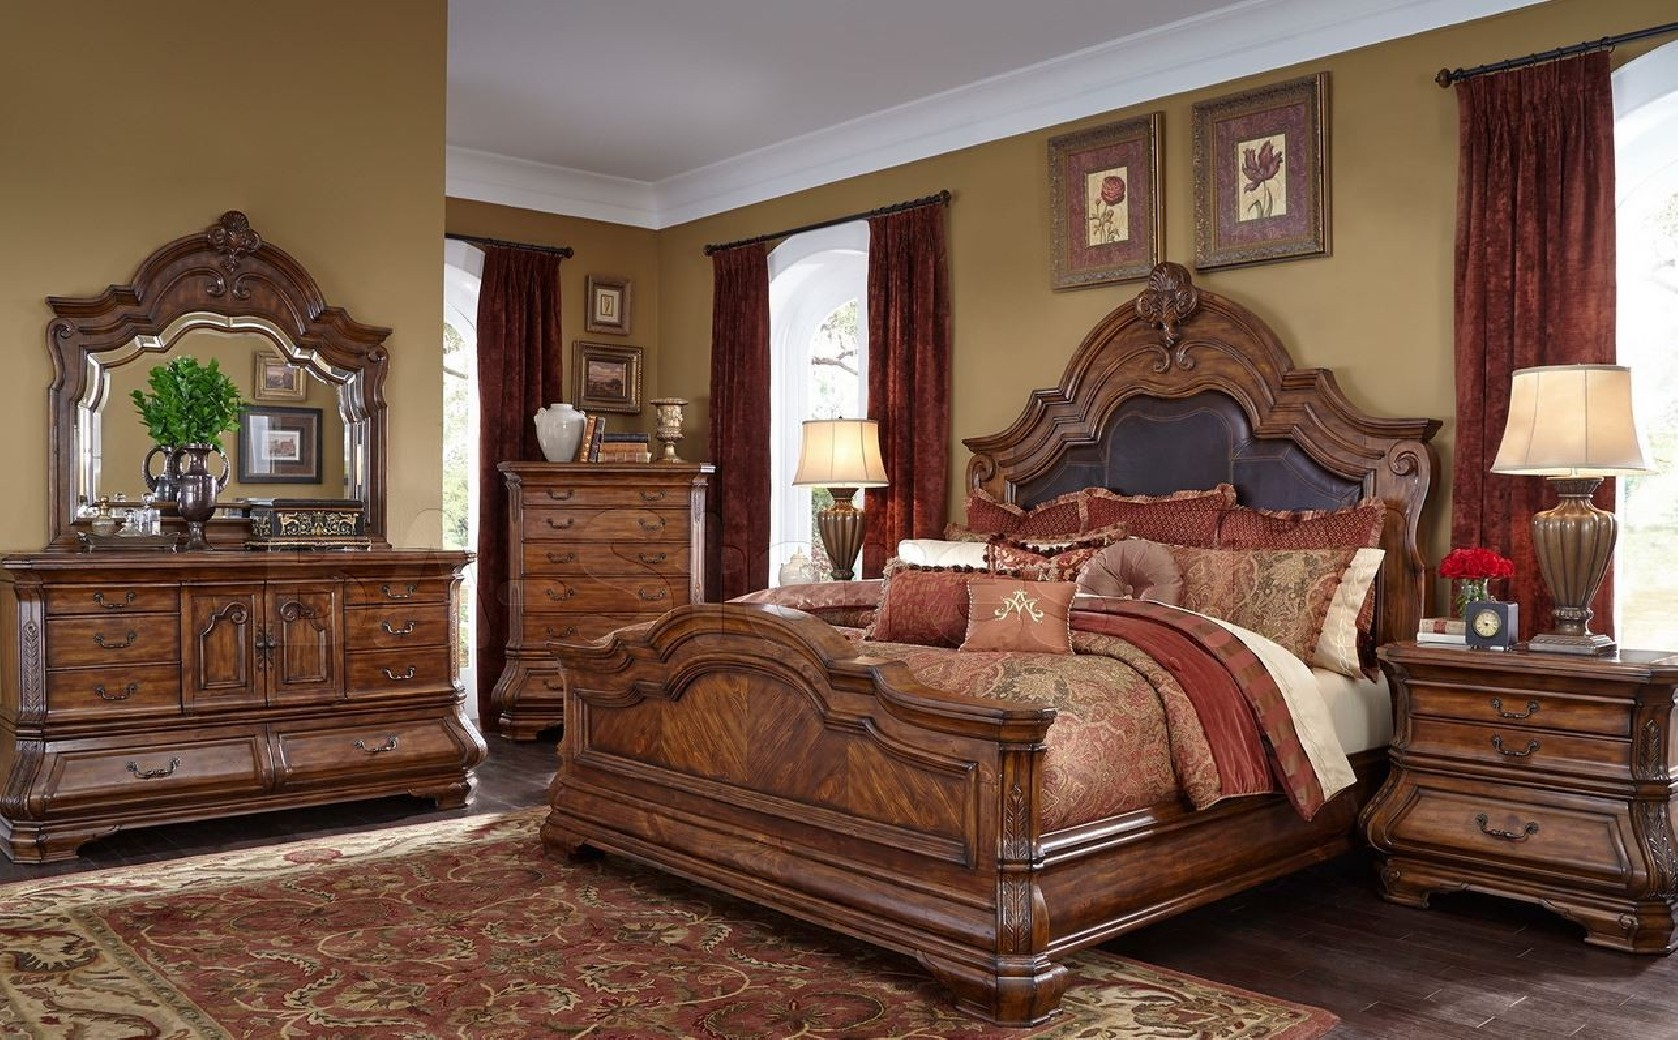 Aico Tuscano Melange Bedroom Set Collection .Melange Finish